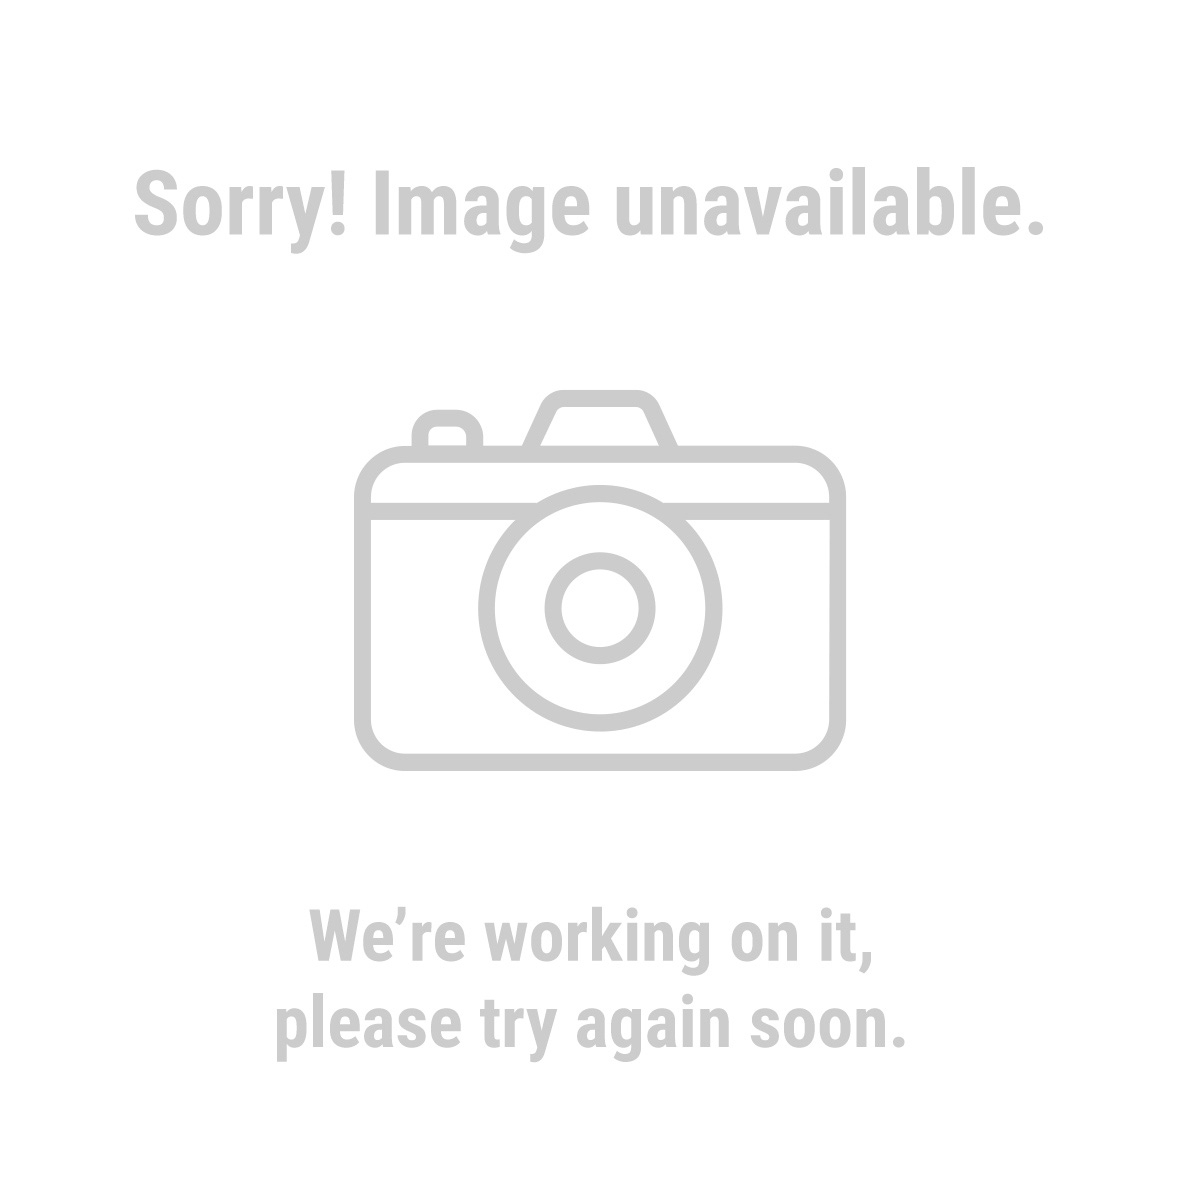 Pittsburgh® Automotive 62516 1.5 Ton Compact Aluminum Racing Floor Jack with Rapid Pump®